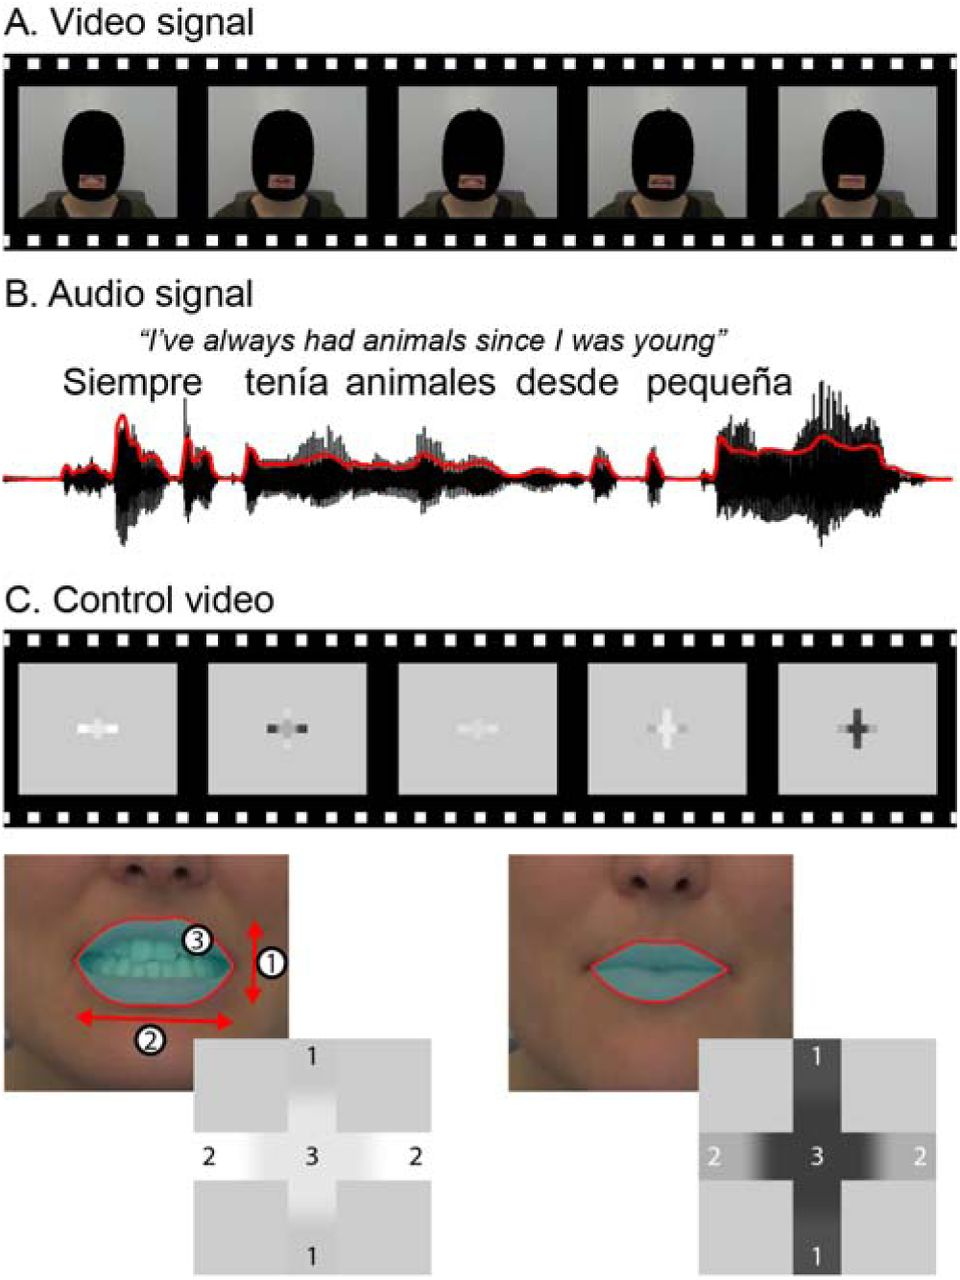 Hearing through lip-reading: the brain synthesizes features